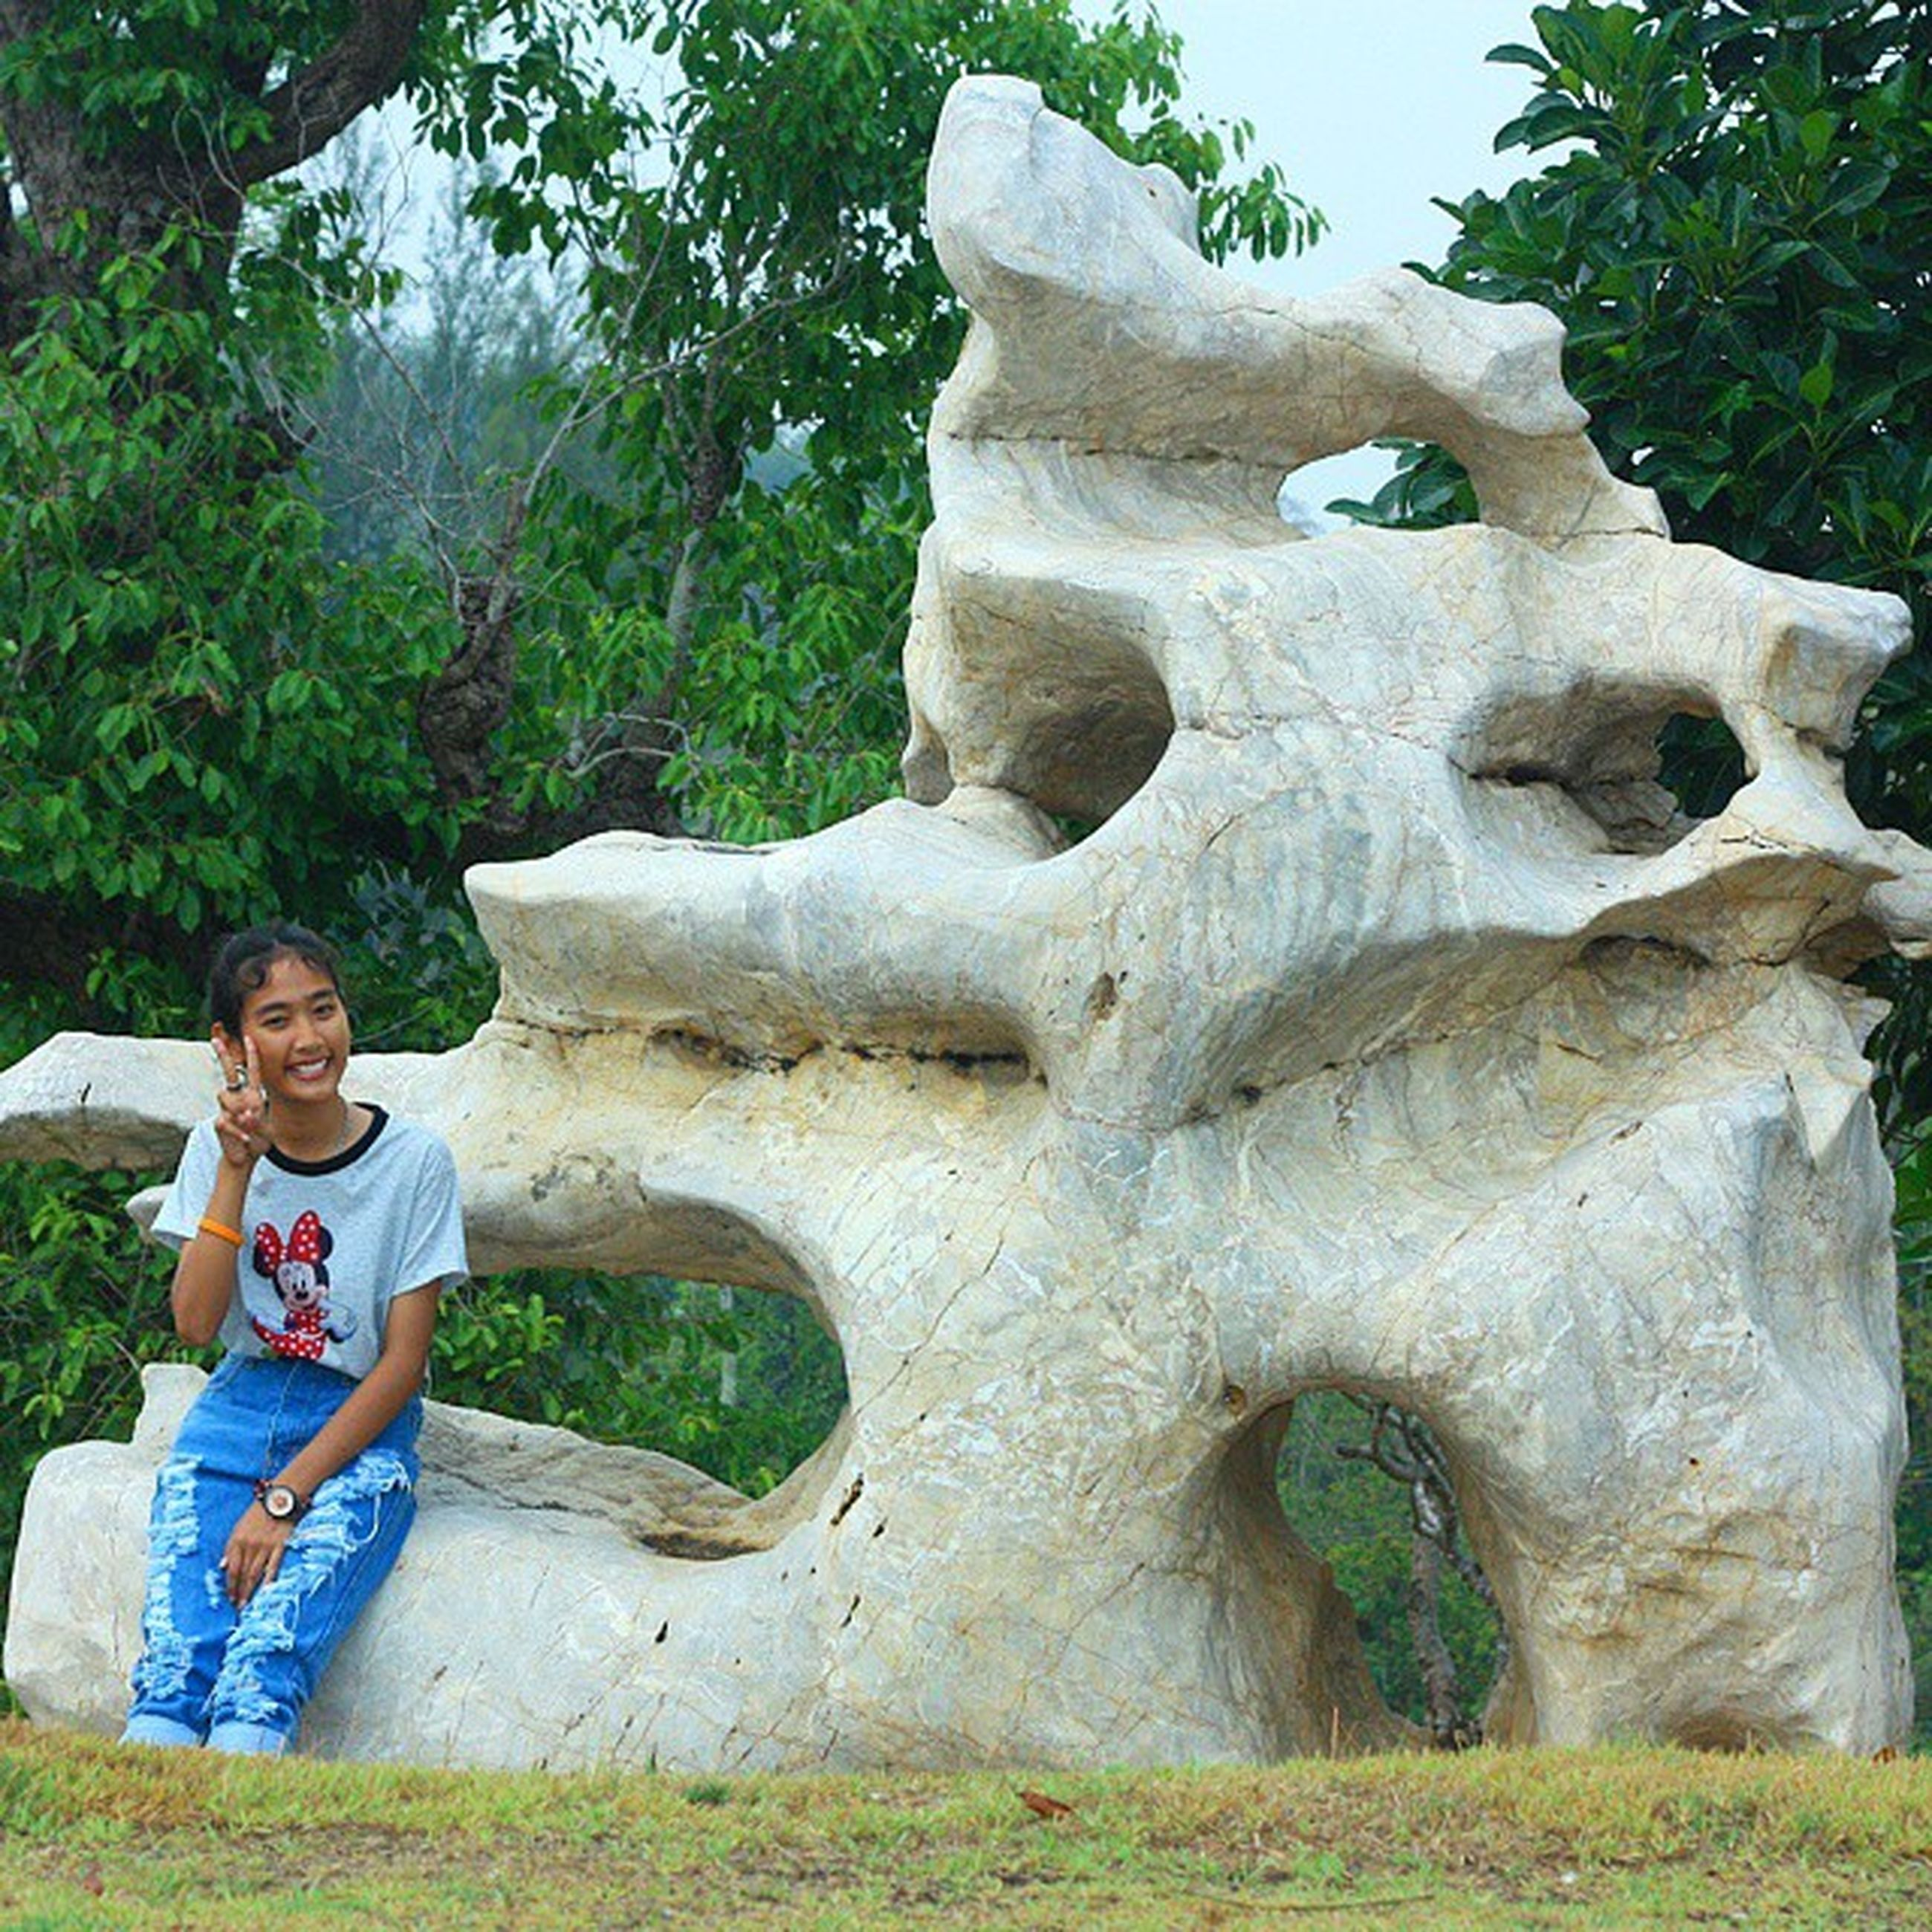 tree, leisure activity, lifestyles, childhood, casual clothing, person, full length, boys, elementary age, girls, park - man made space, smiling, day, rock - object, standing, nature, human representation, outdoors